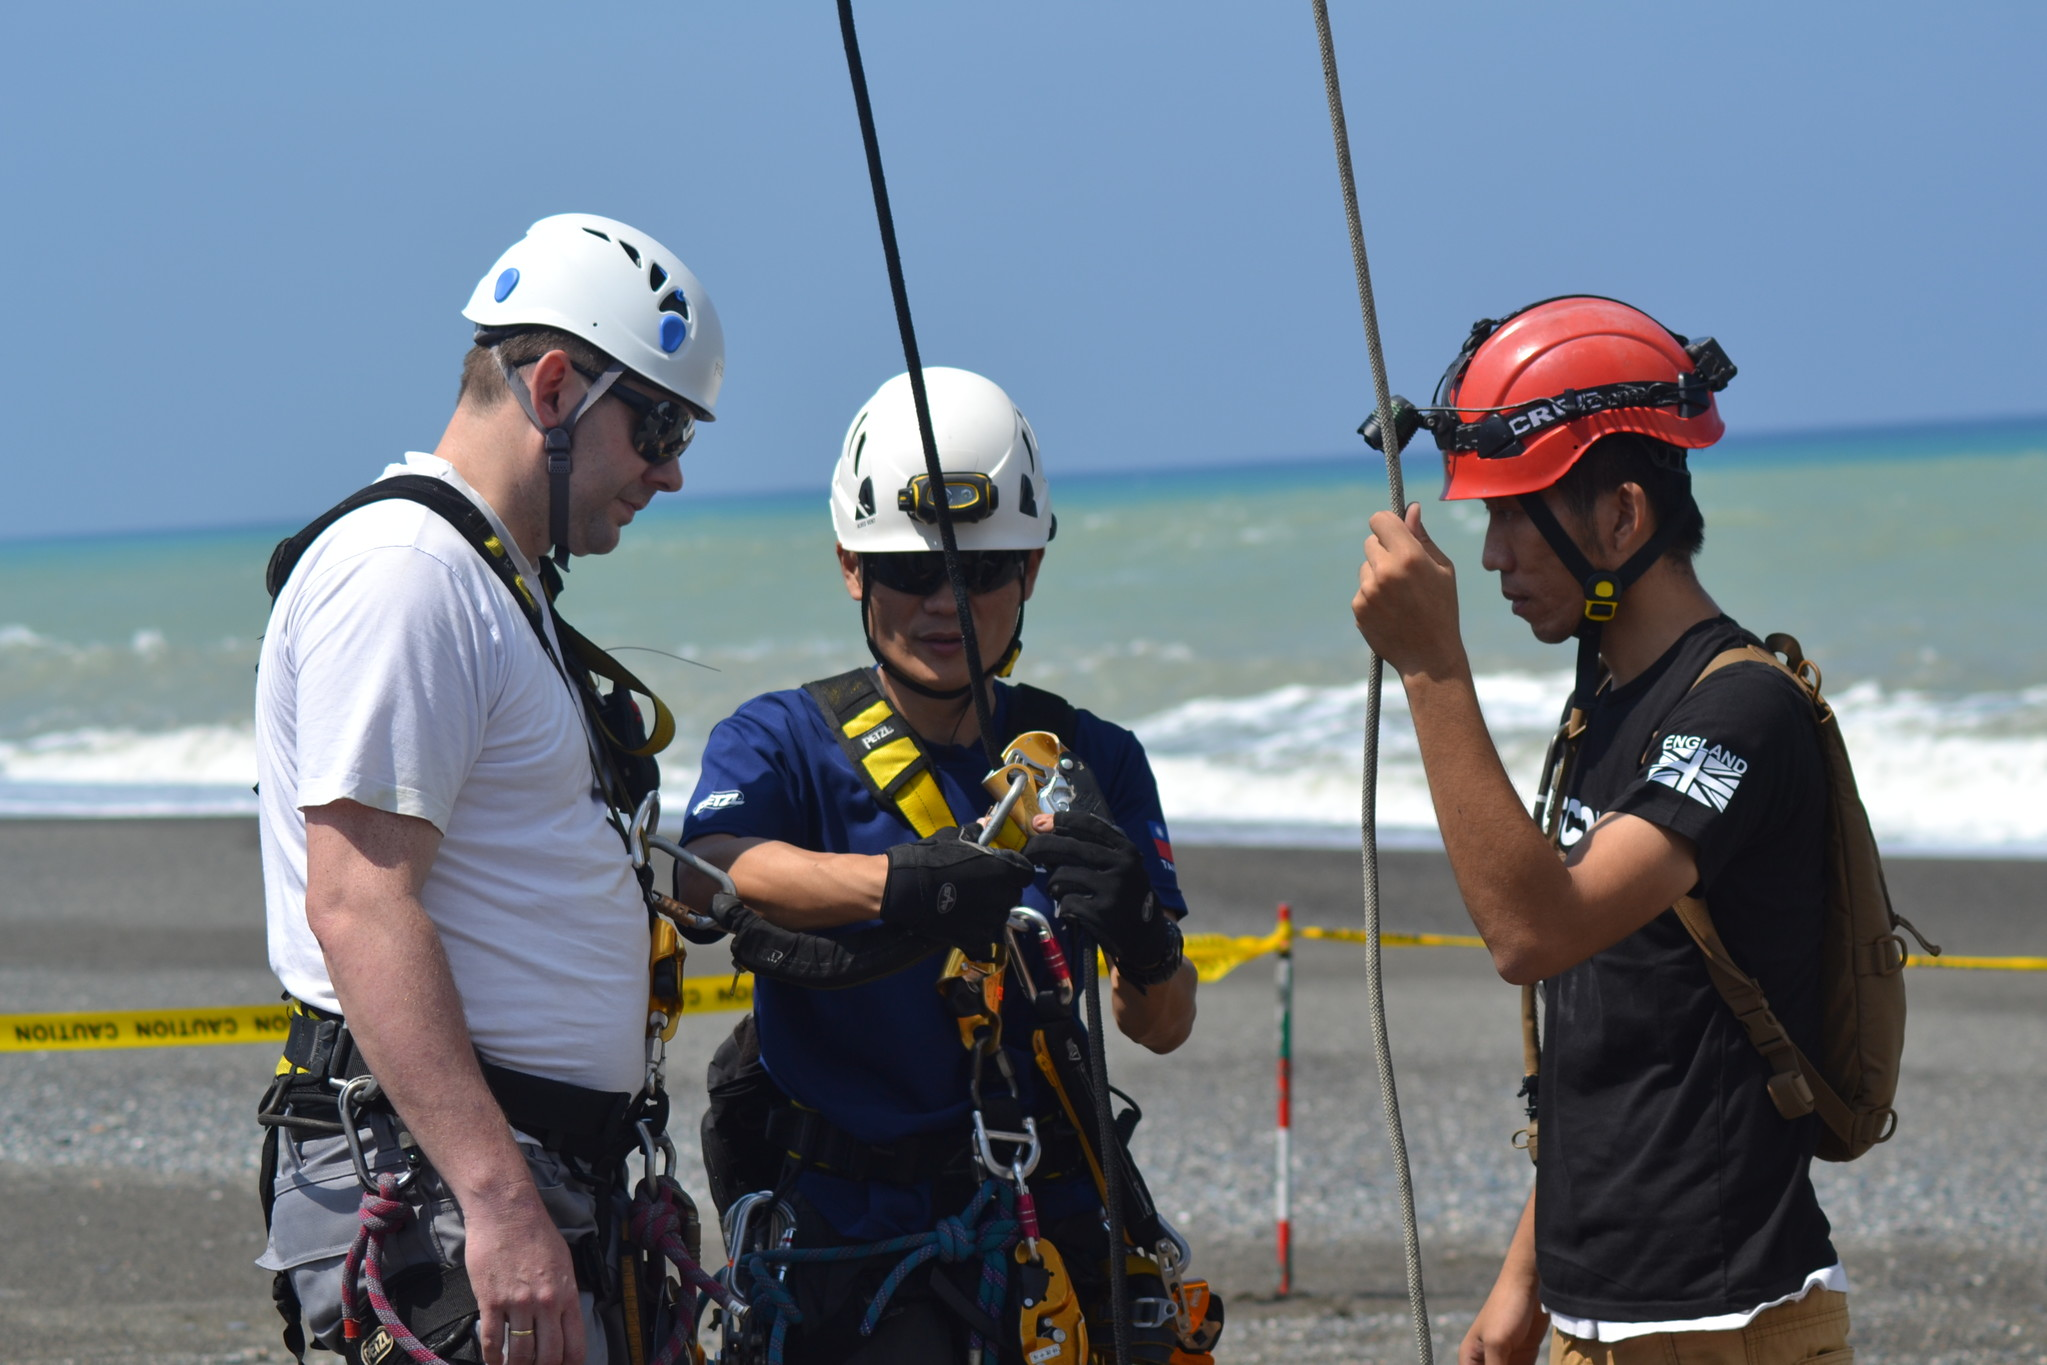 Consultant / NDI inspector / Instructor, Robert Otterspoor is ready for a blade NDI-damage assessment with the AiRAS Rope team from China.